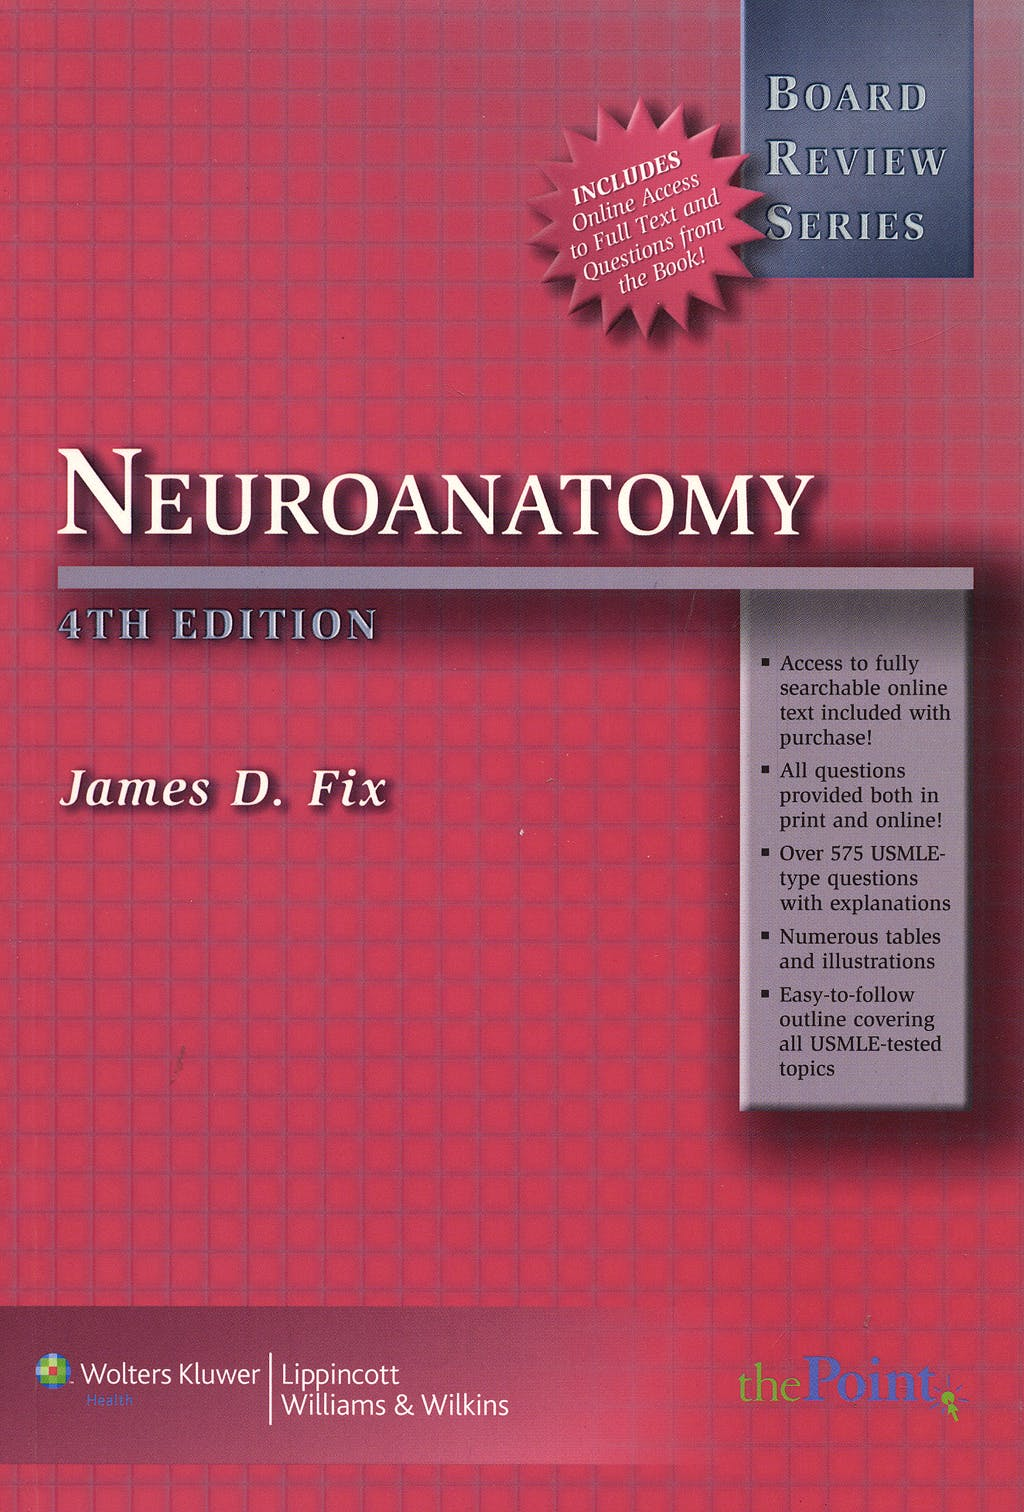 Producto: BRS Neuroanatomy (Board Review Series)